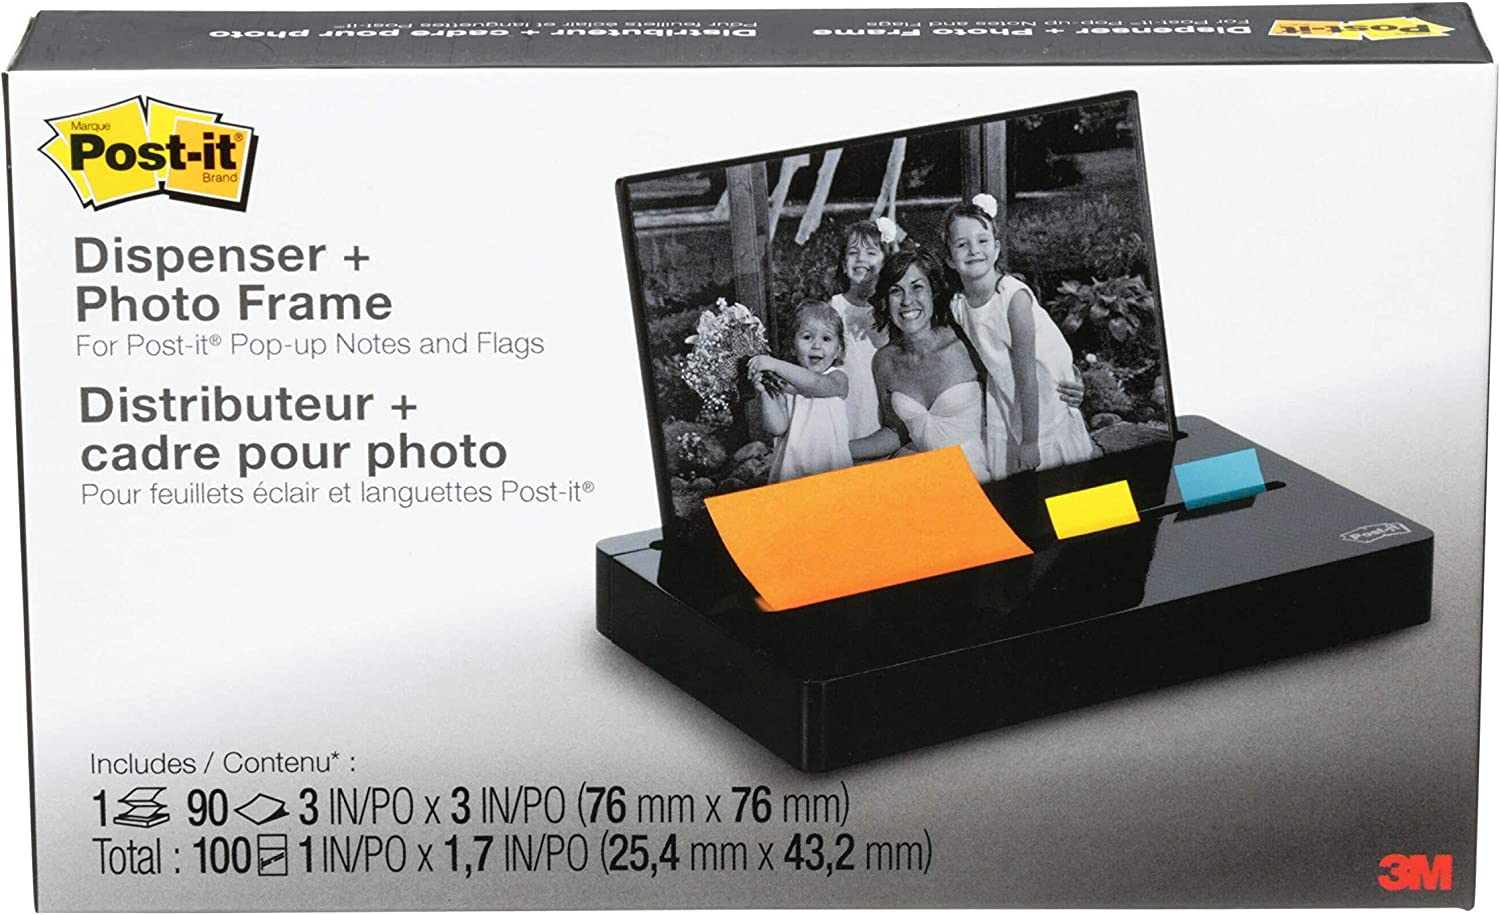 Post-it Pop-up Super sale Notes Note Flag Dispenser Frame wi Photo + Indianapolis Mall